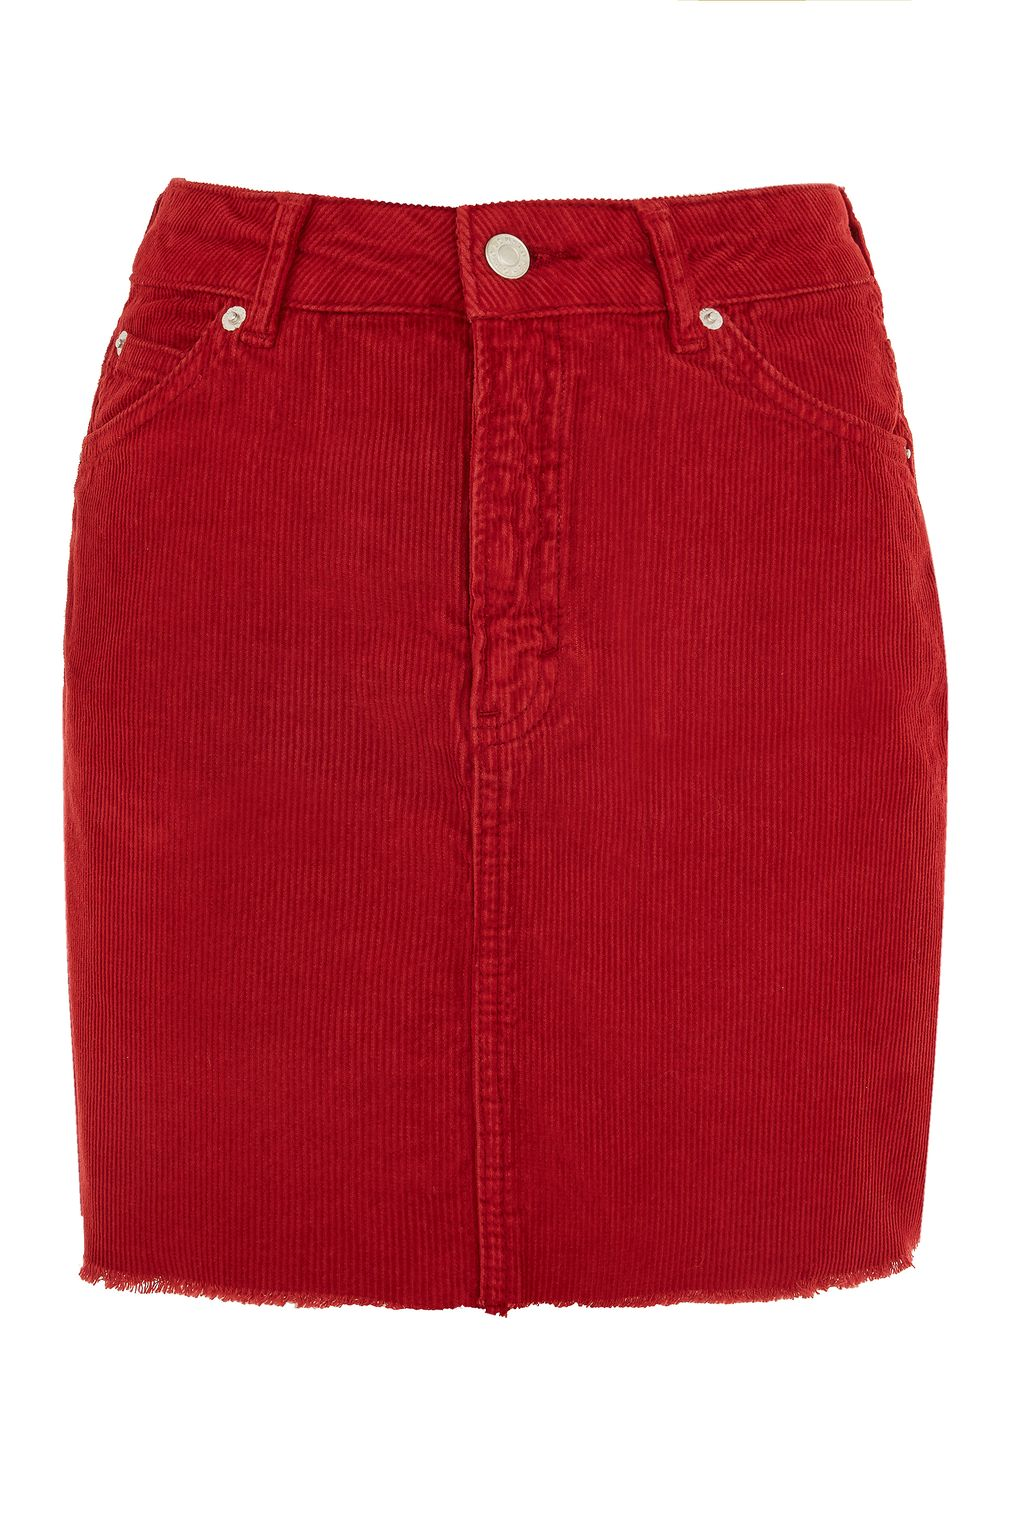 Red CordSkirt - @topshop